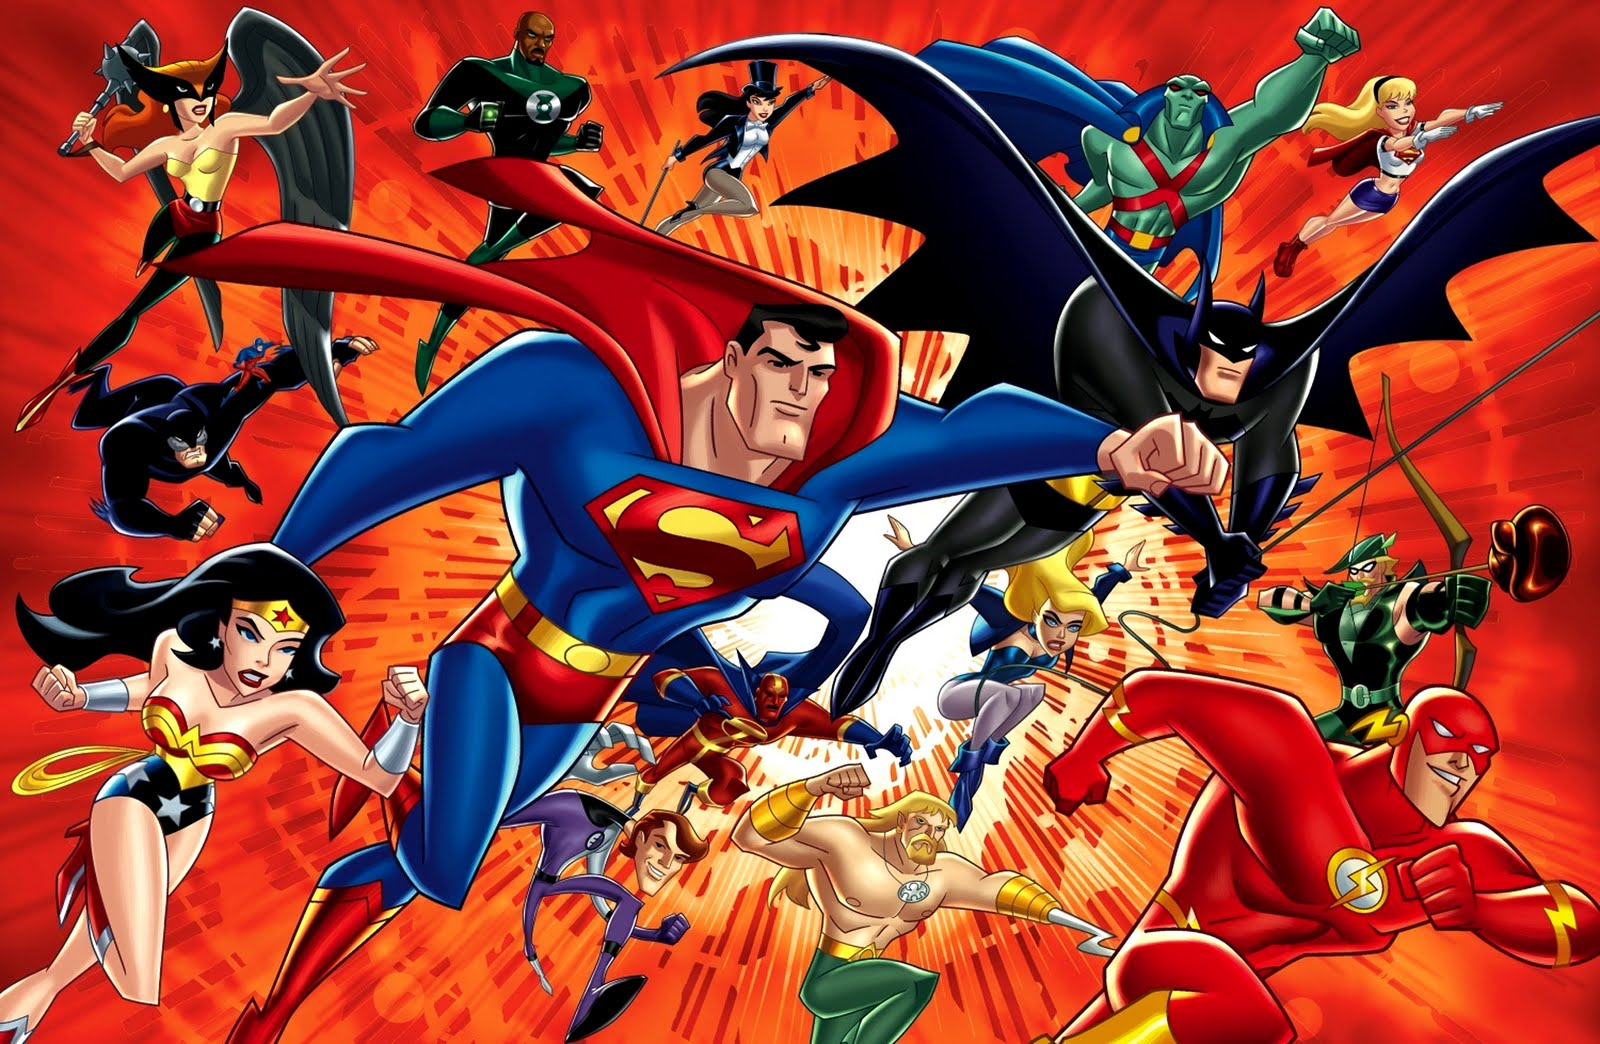 dc comics all super heroes hd wallpapers download free wallpapersjpg 1600x1044